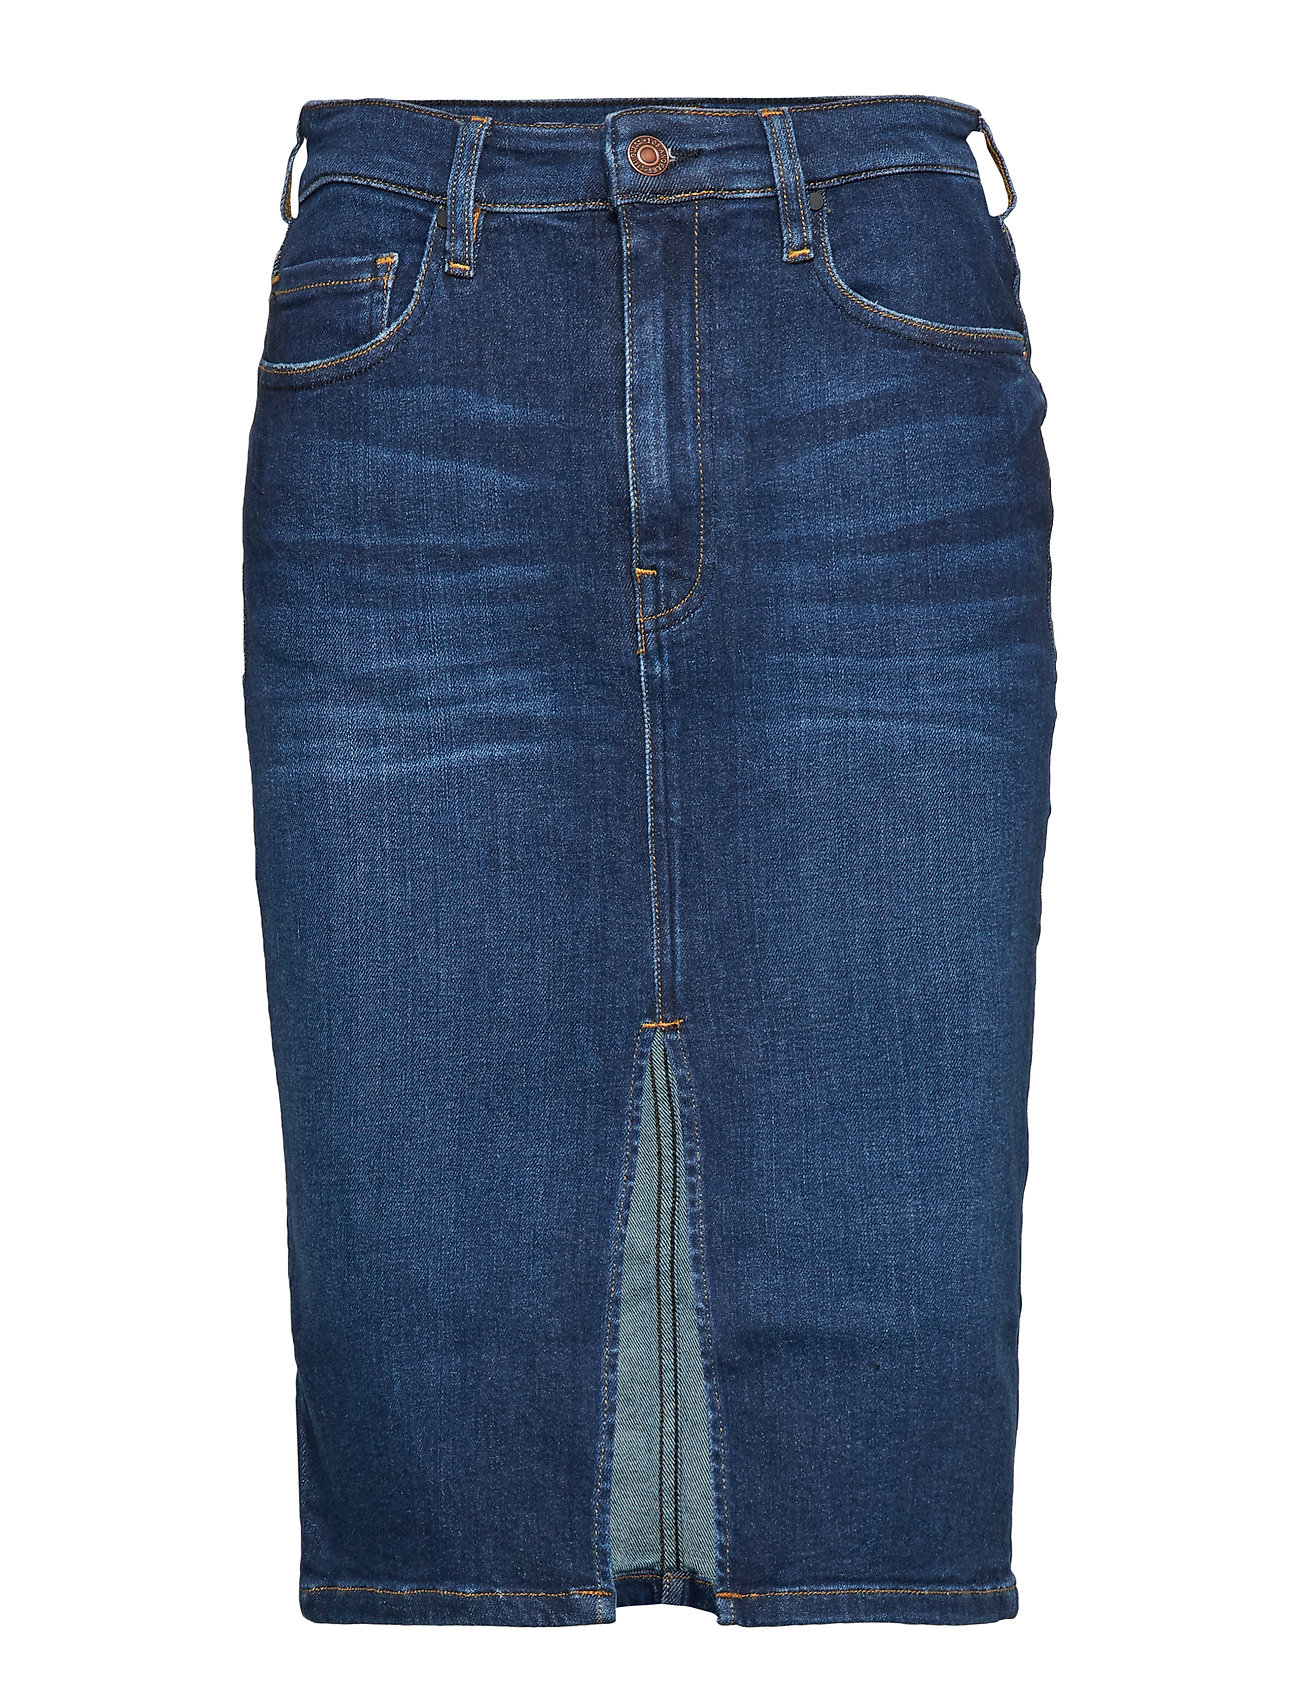 a8bf861d The It Girl Longuette (Straight Wash) (719.20 kr) - GUESS Jeans ...